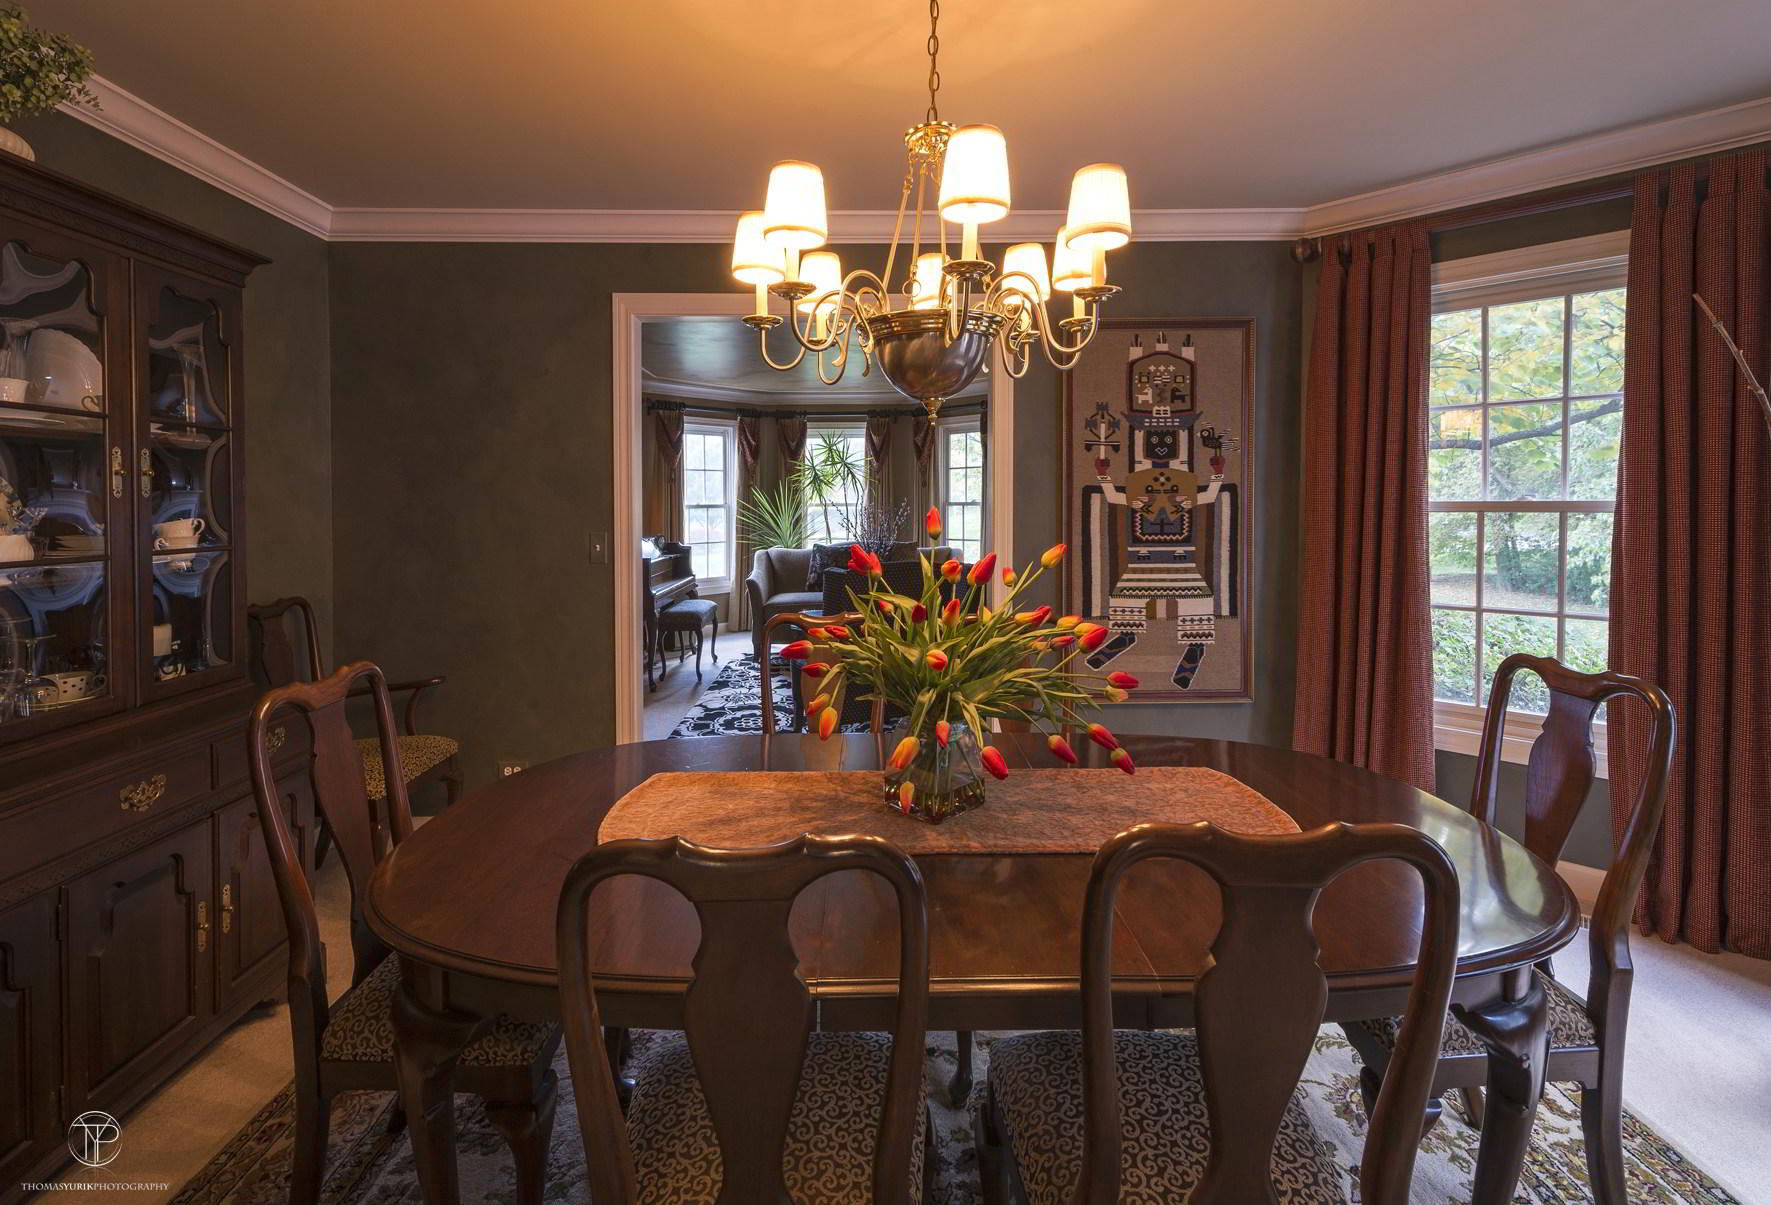 Guests enjoy dining in this formal dining room.